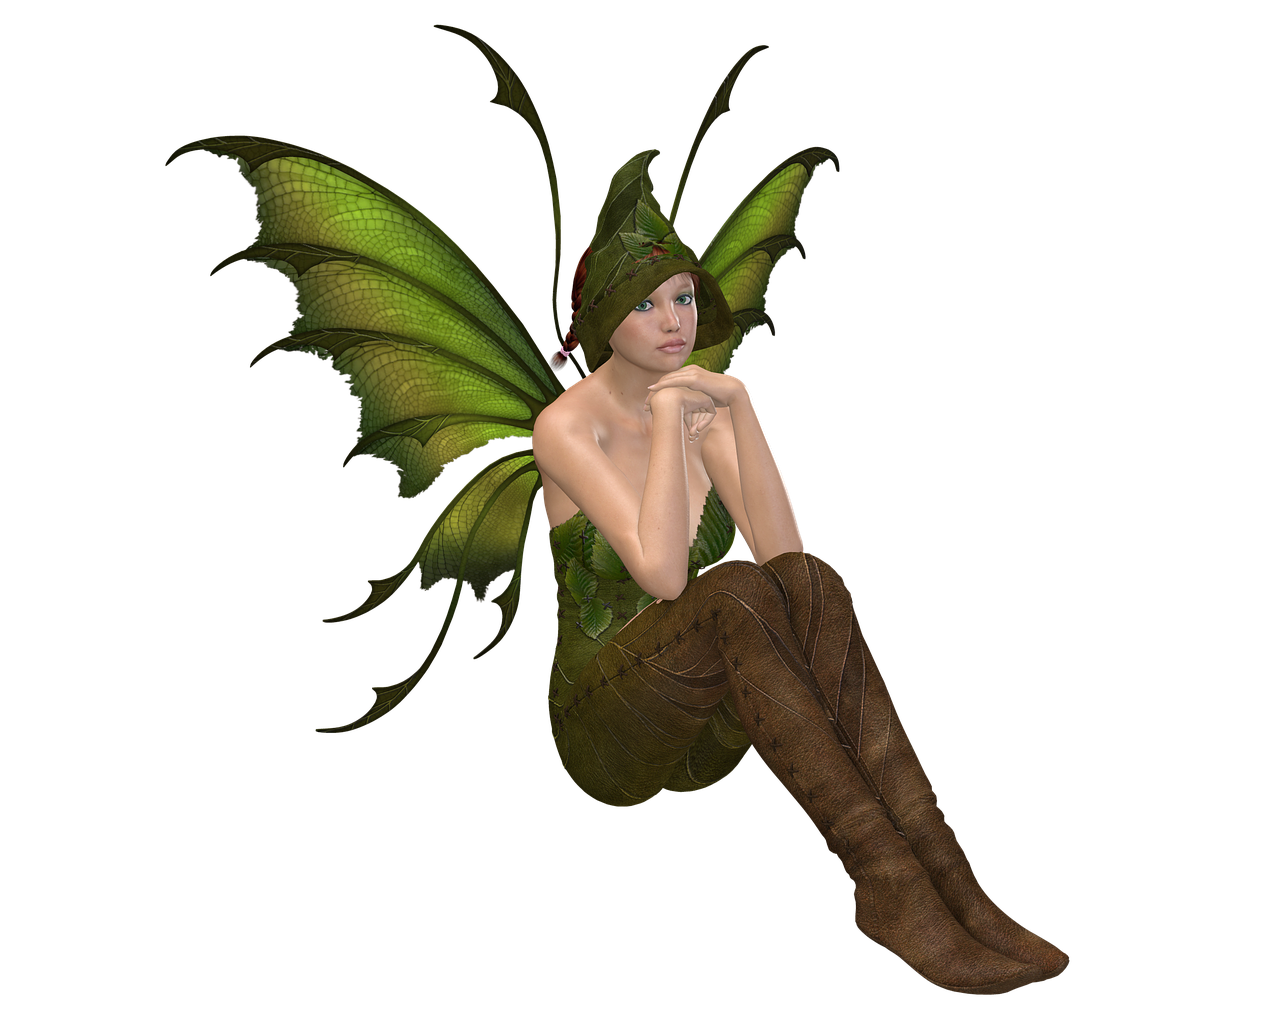 pixie by Loulou Nash from Pixabay.png